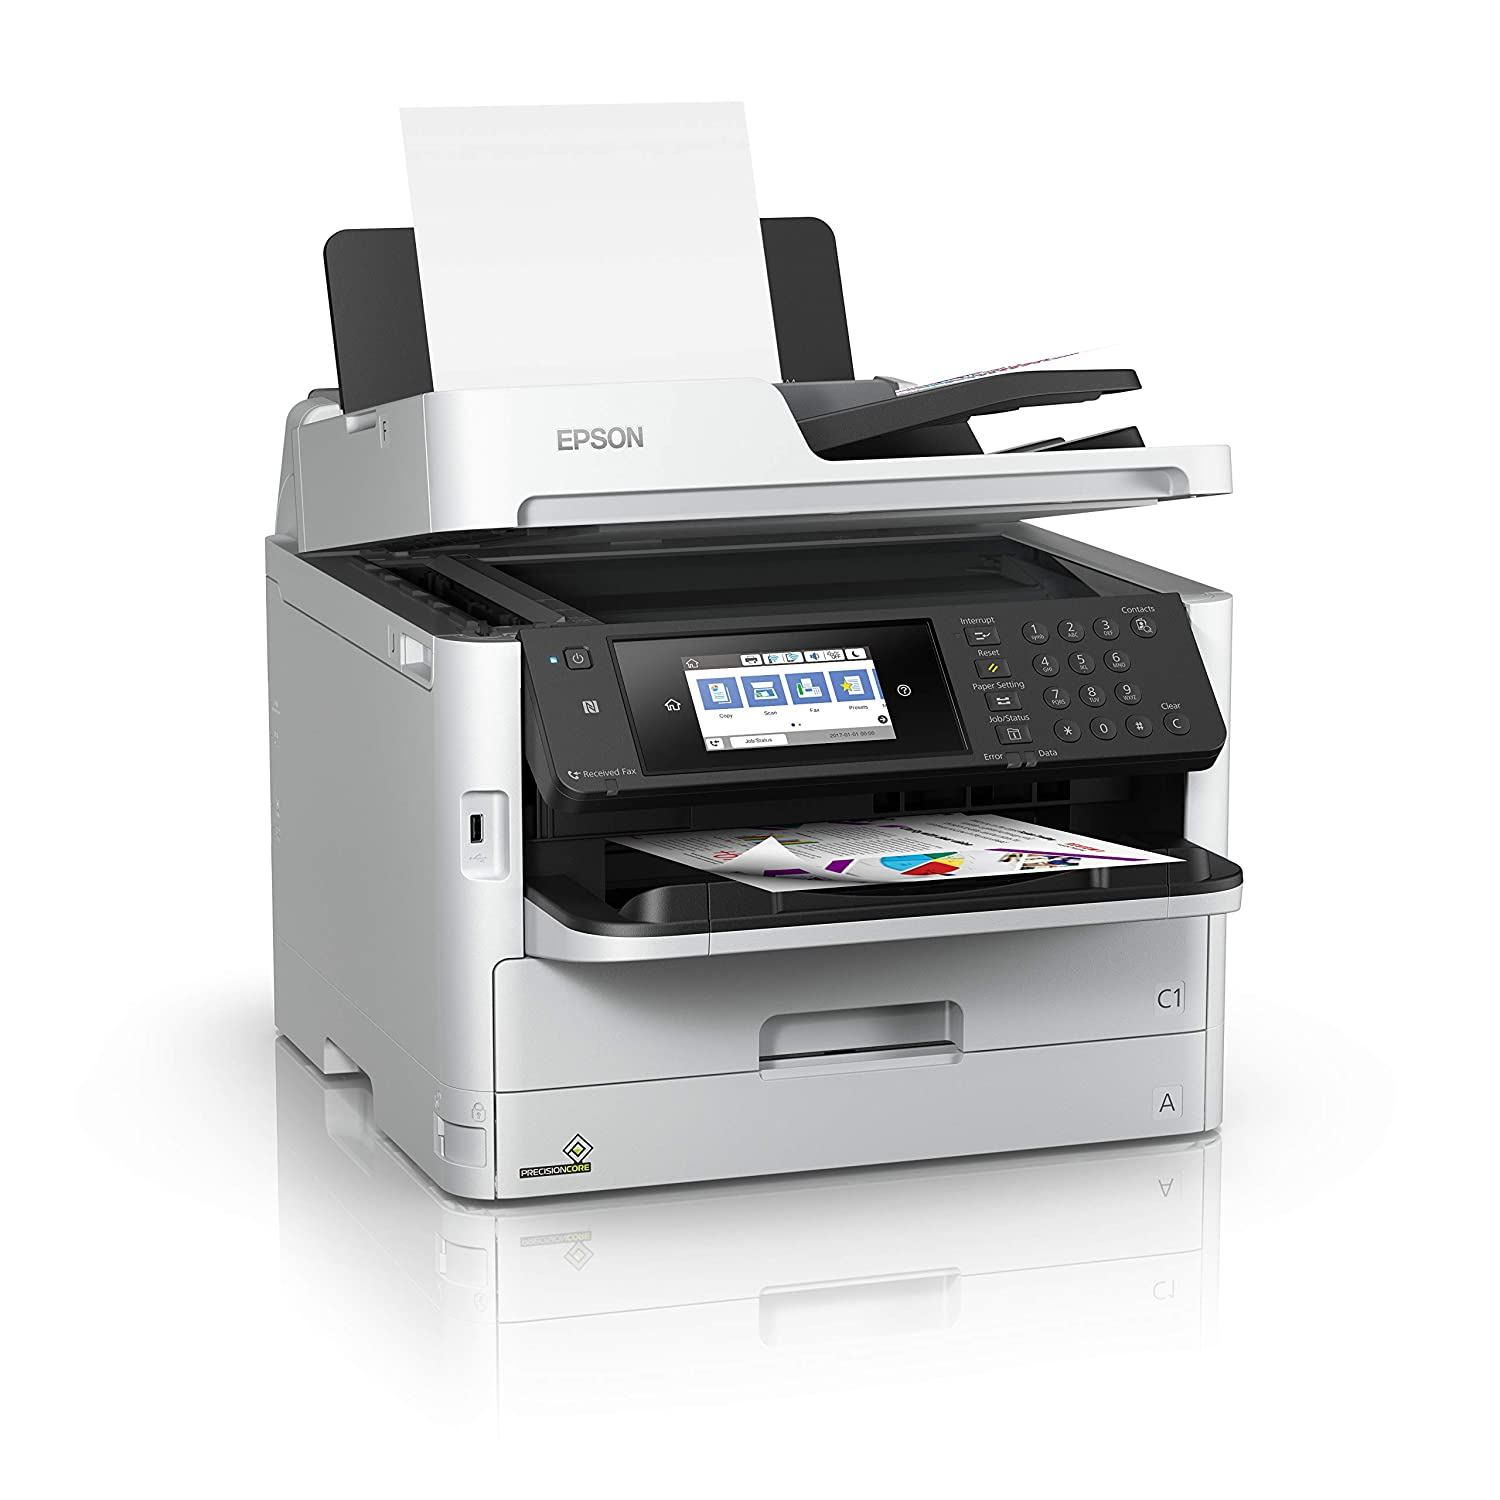 MFP WF-C5790DWF 4ink A4/fax/WLAN/34pps/PS3+PCL6